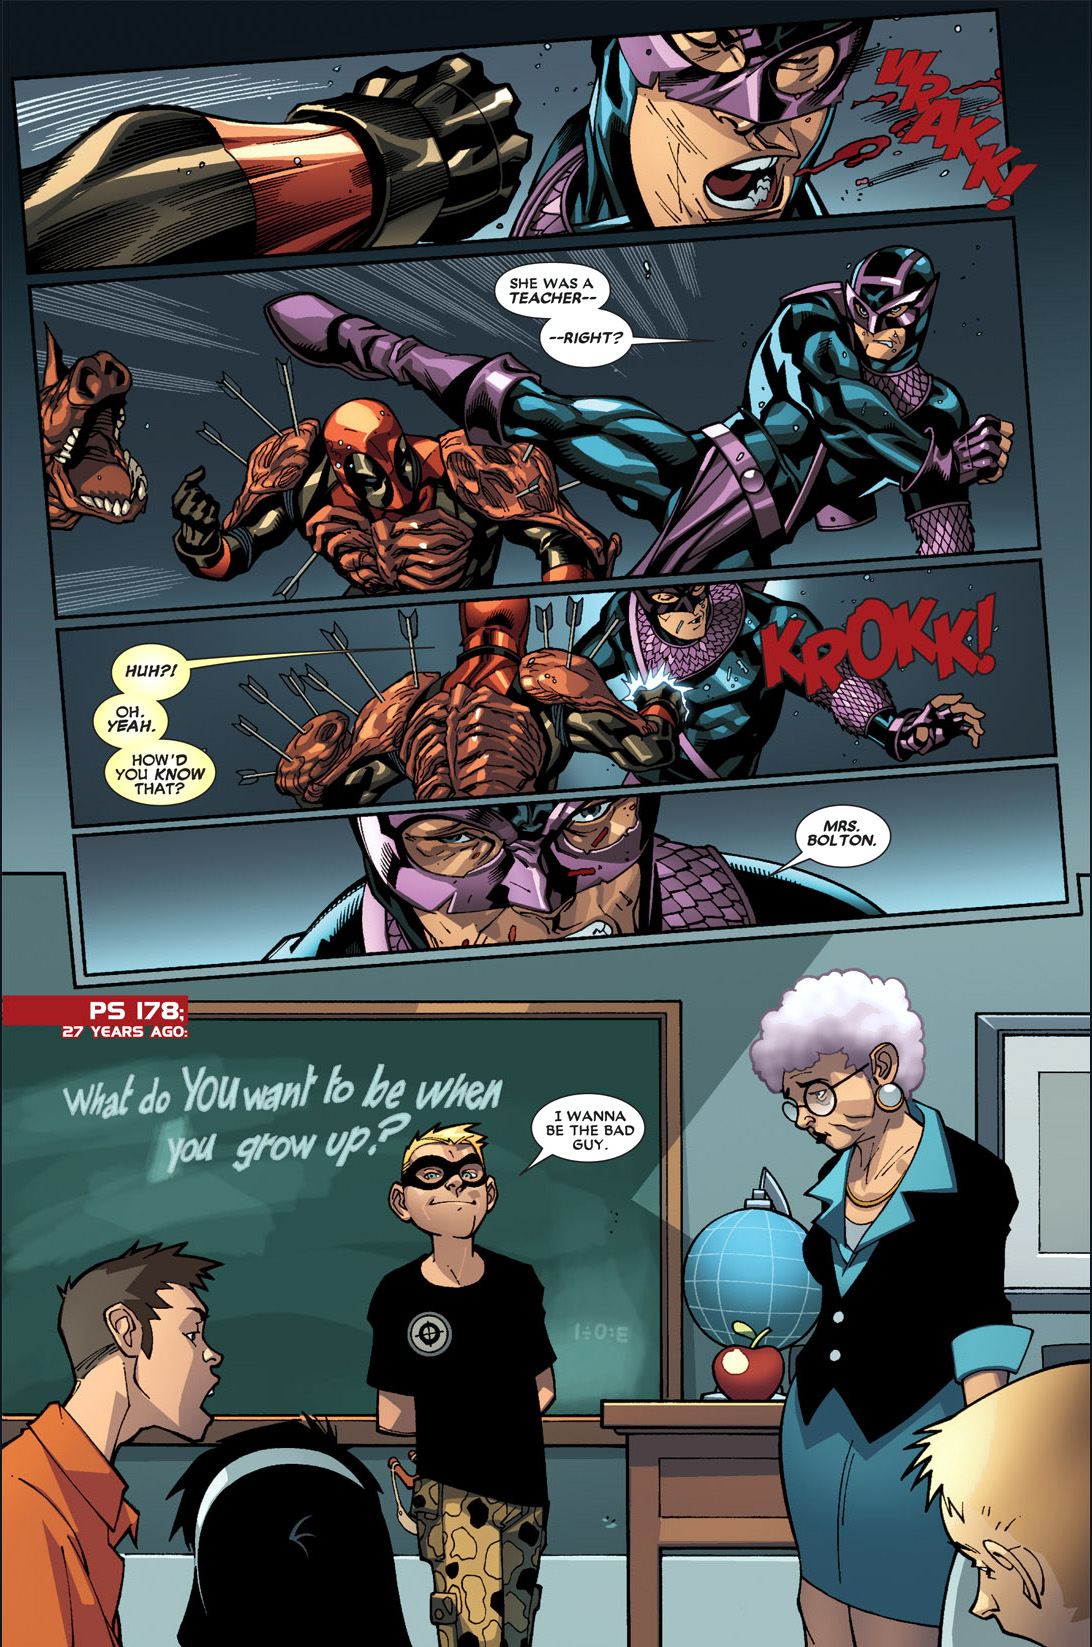 deadpool and dark avenger hawkeye's school flashback